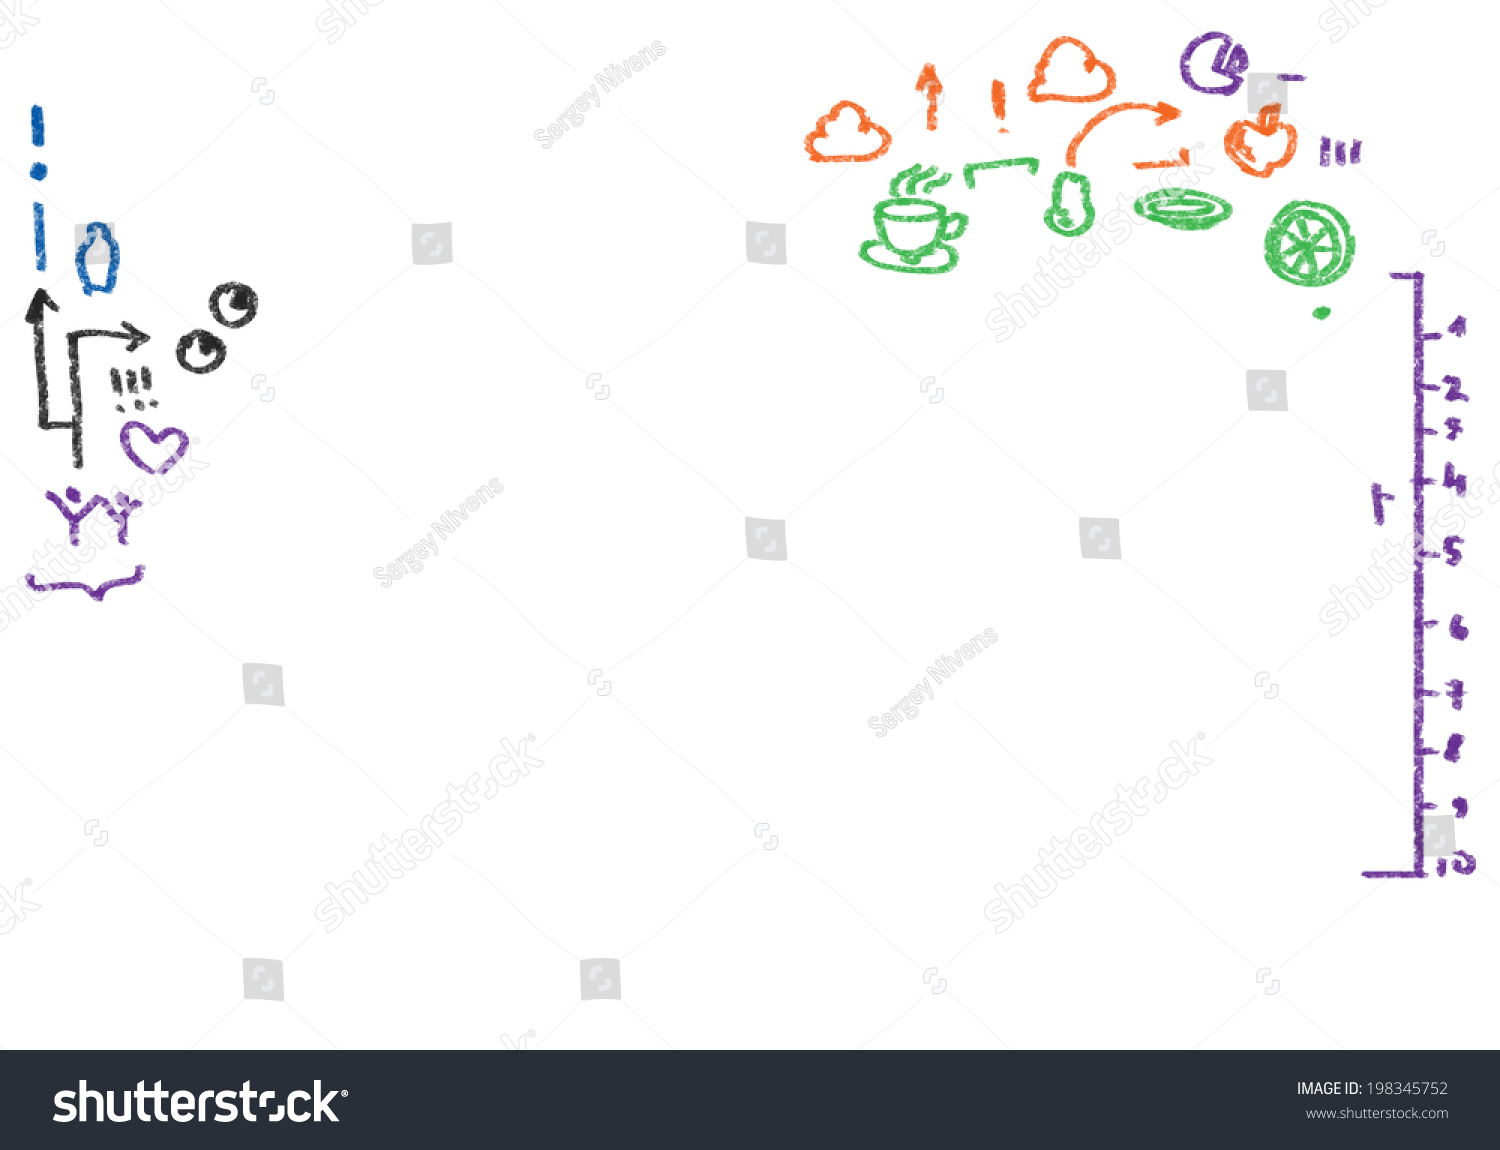 Conceptual image with sketches on white background